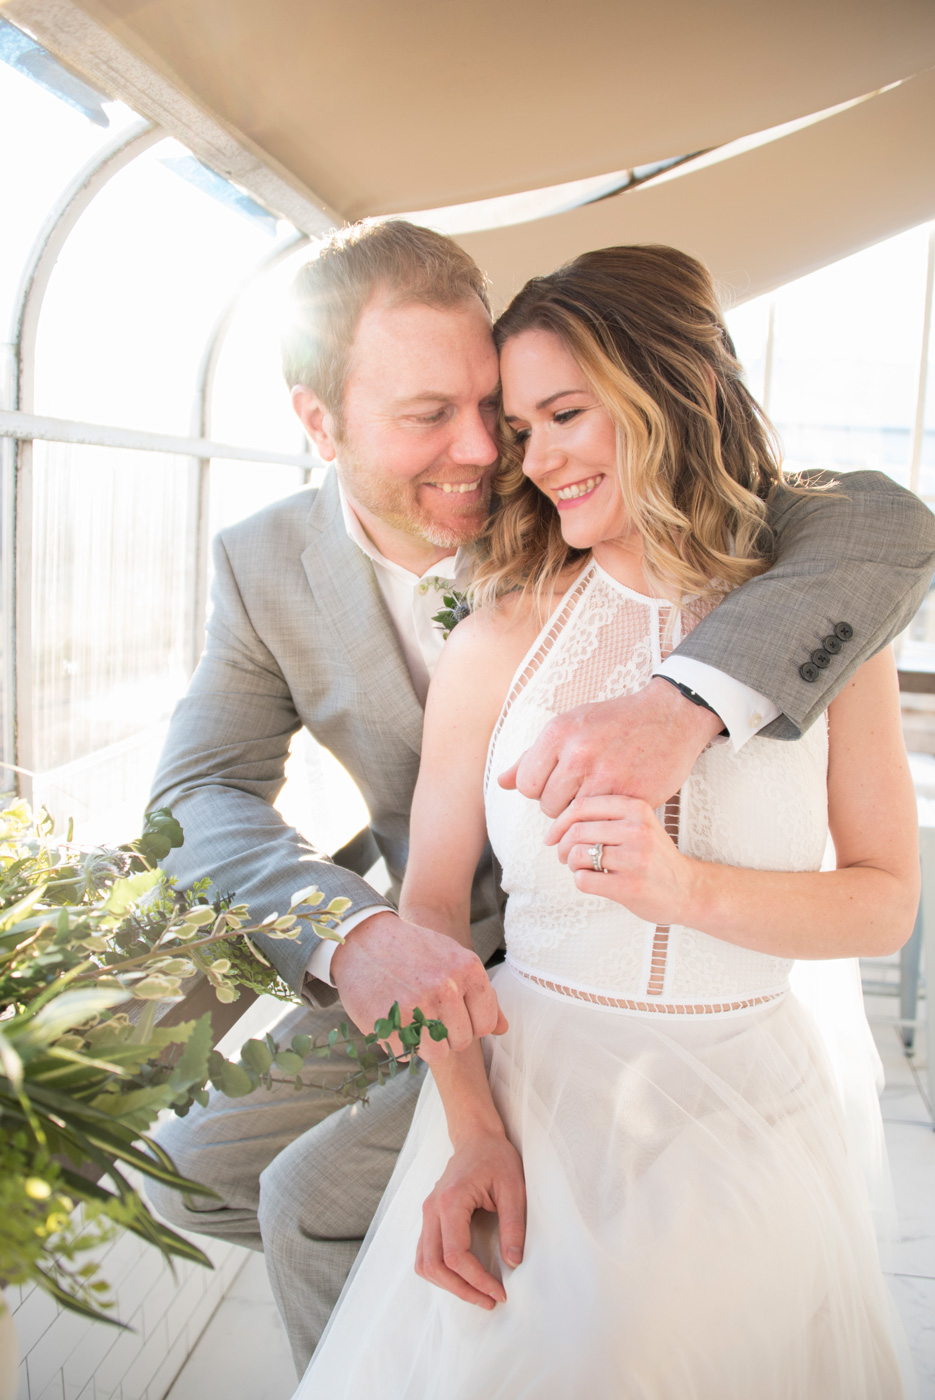 Light and Airy Photography by BlueVerve Studio